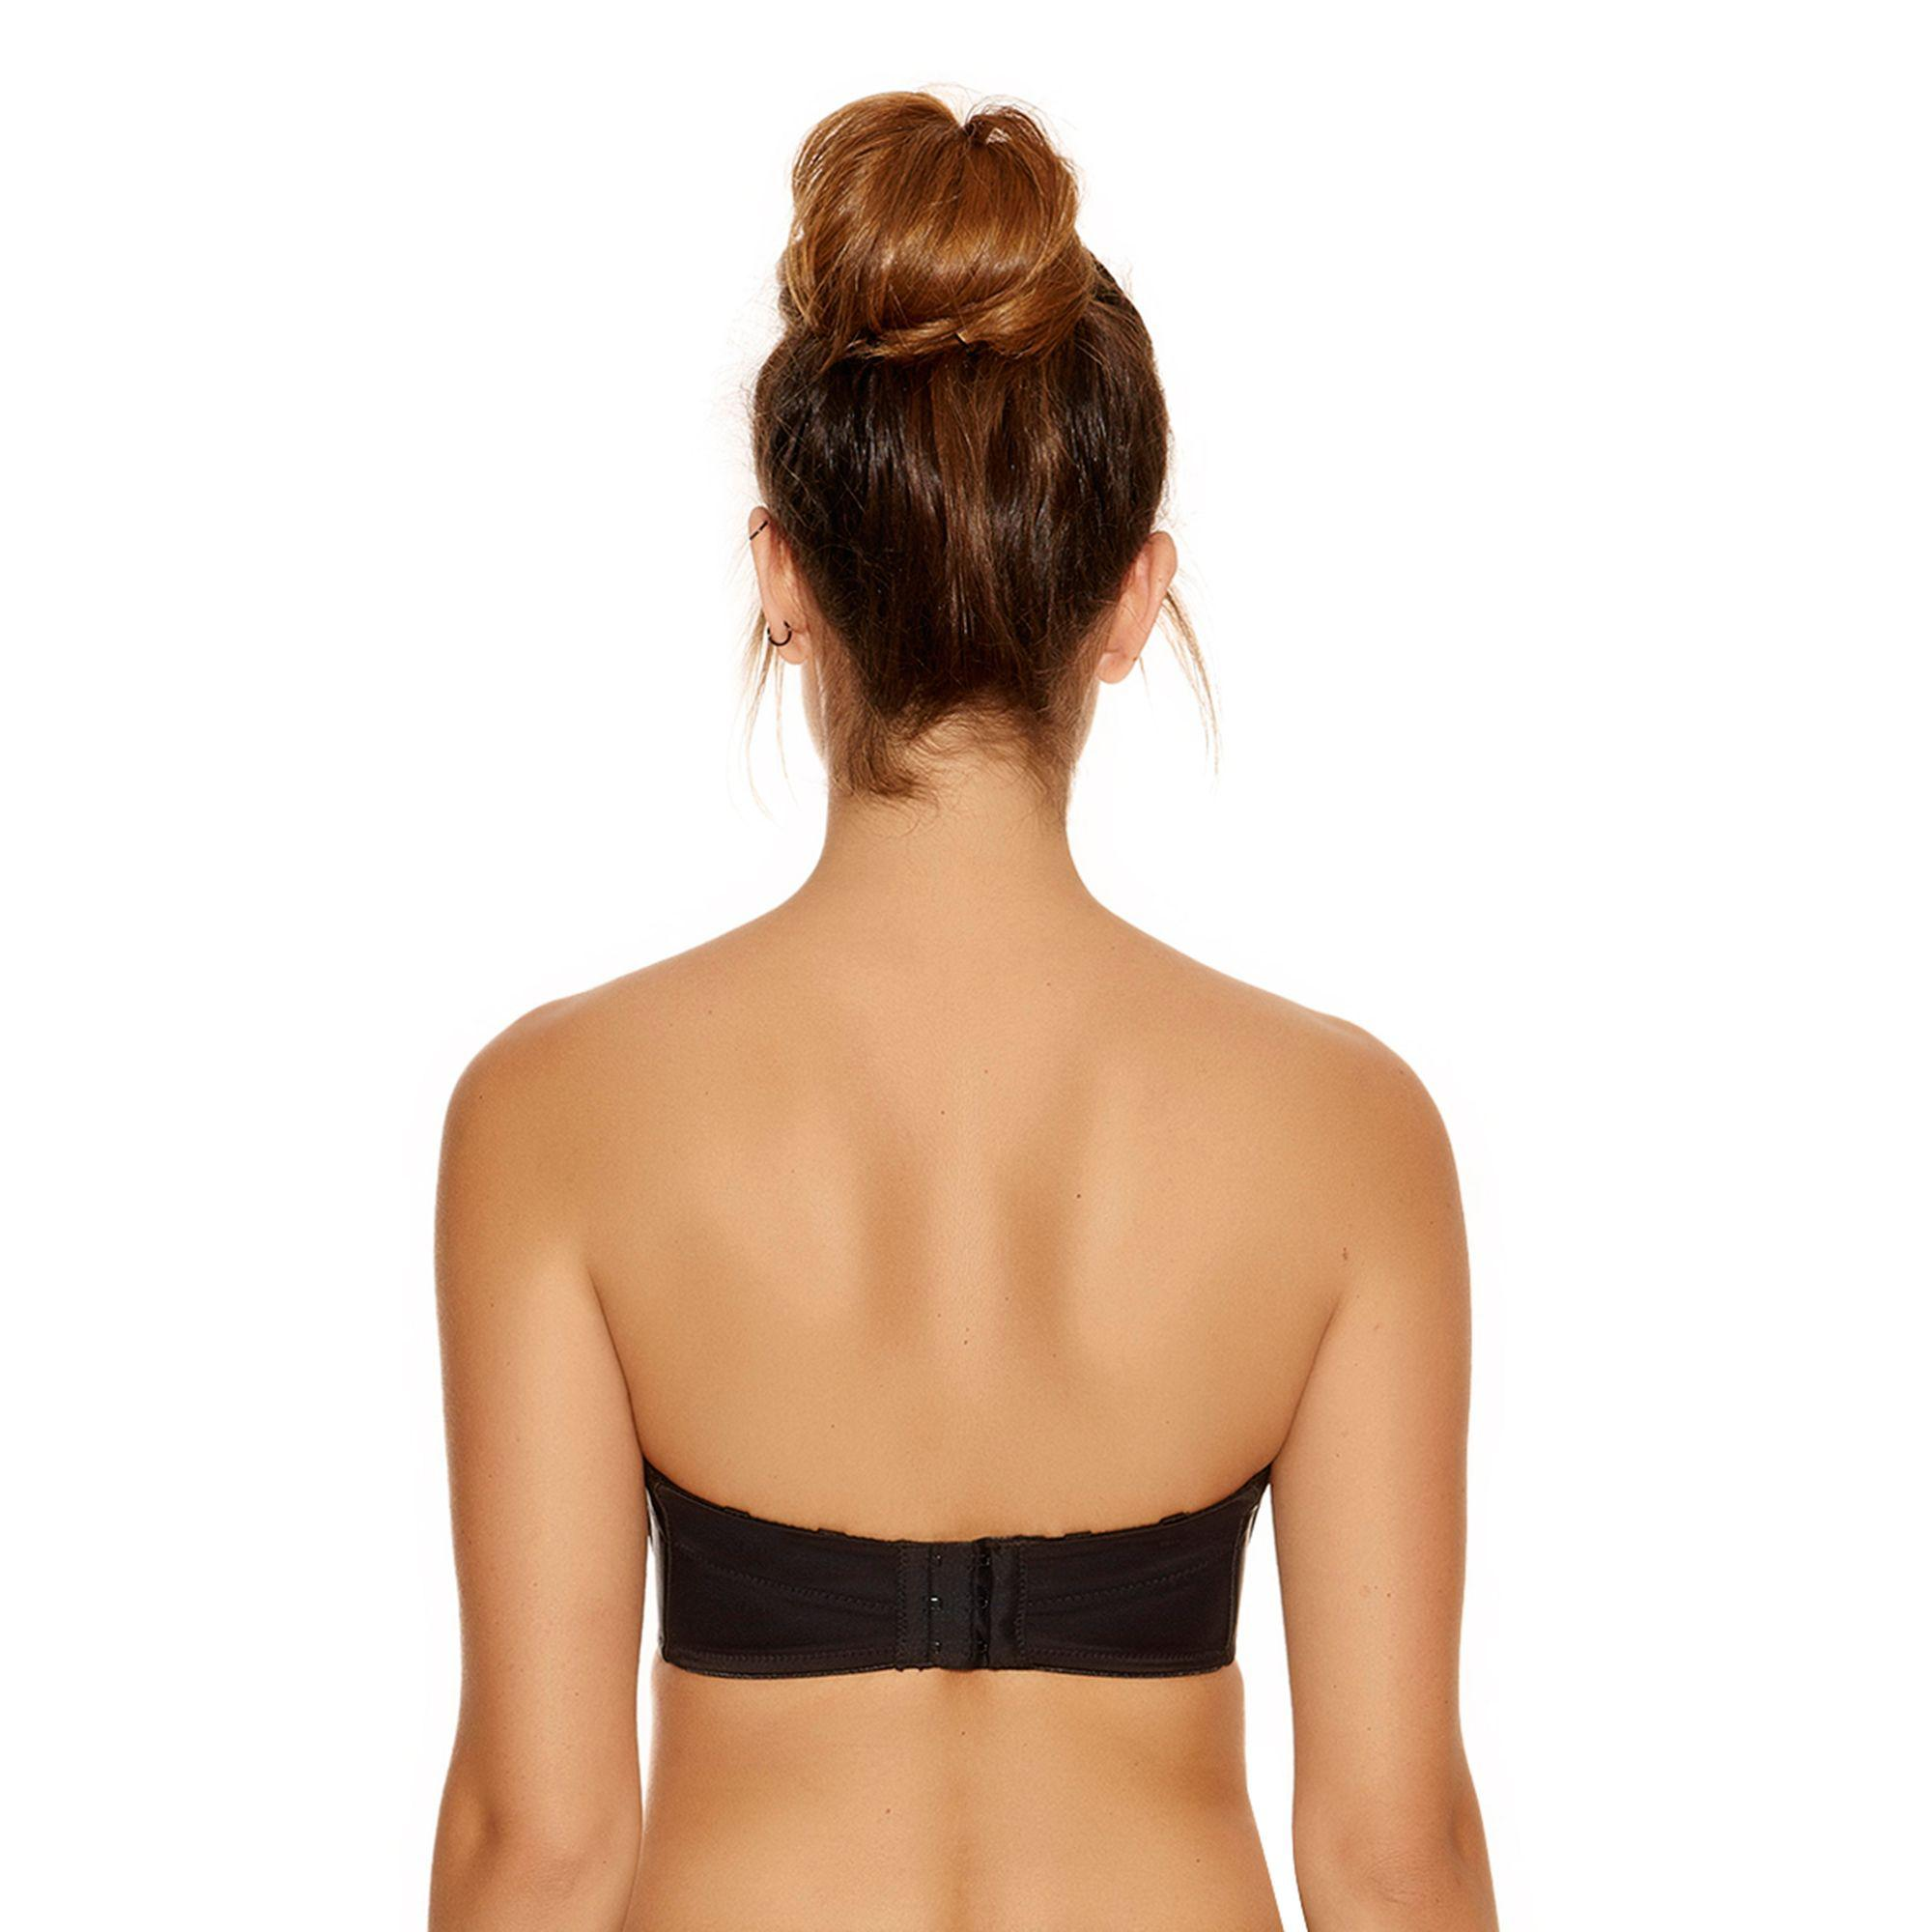 bcfbdfc3991f9 Fantasie - Black Underwired Moulded Cups Strapless Bra - Lyst. View  fullscreen